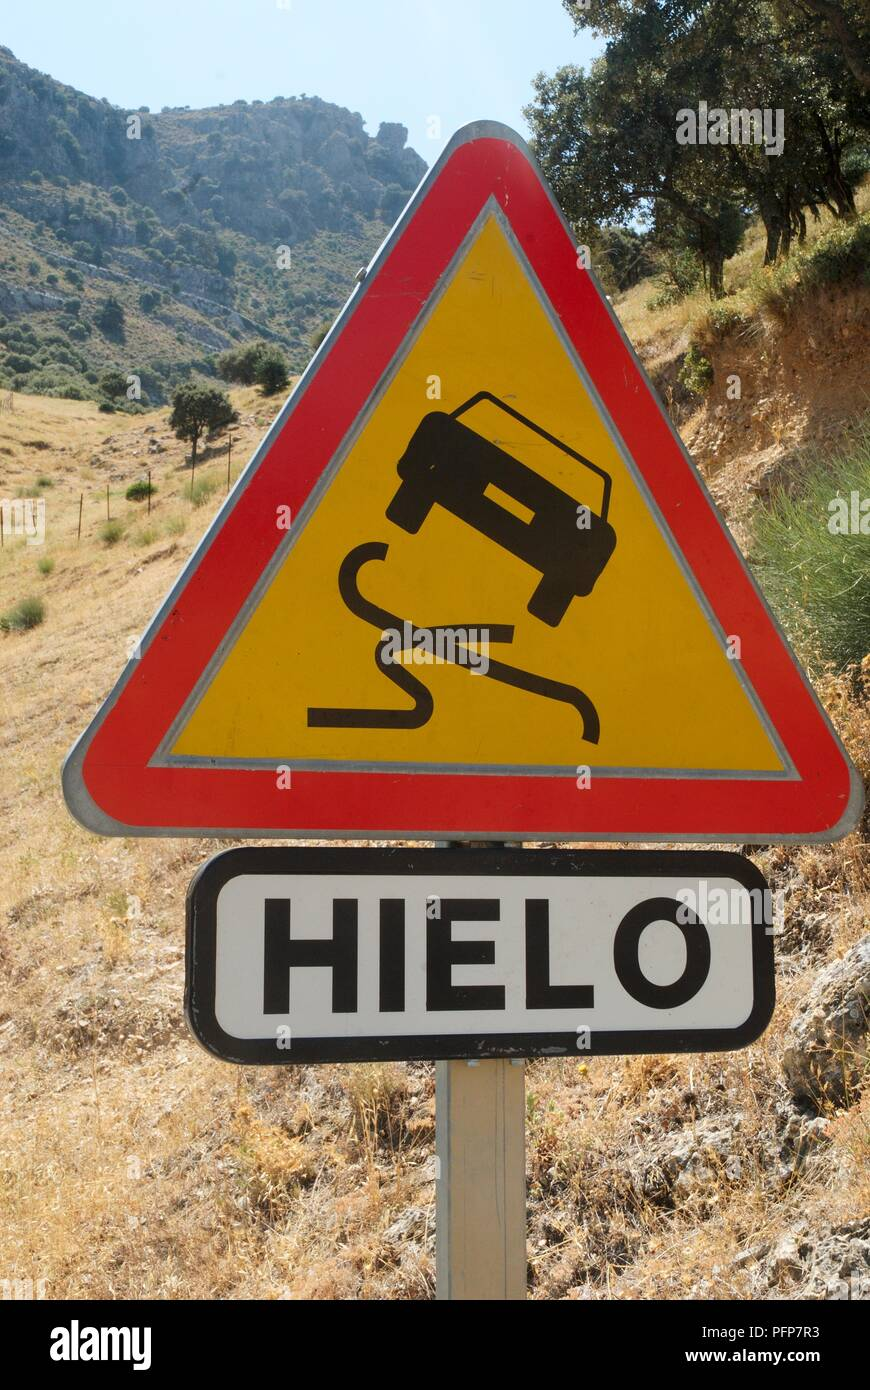 Spain, slippery road sign, close-up - Stock Image